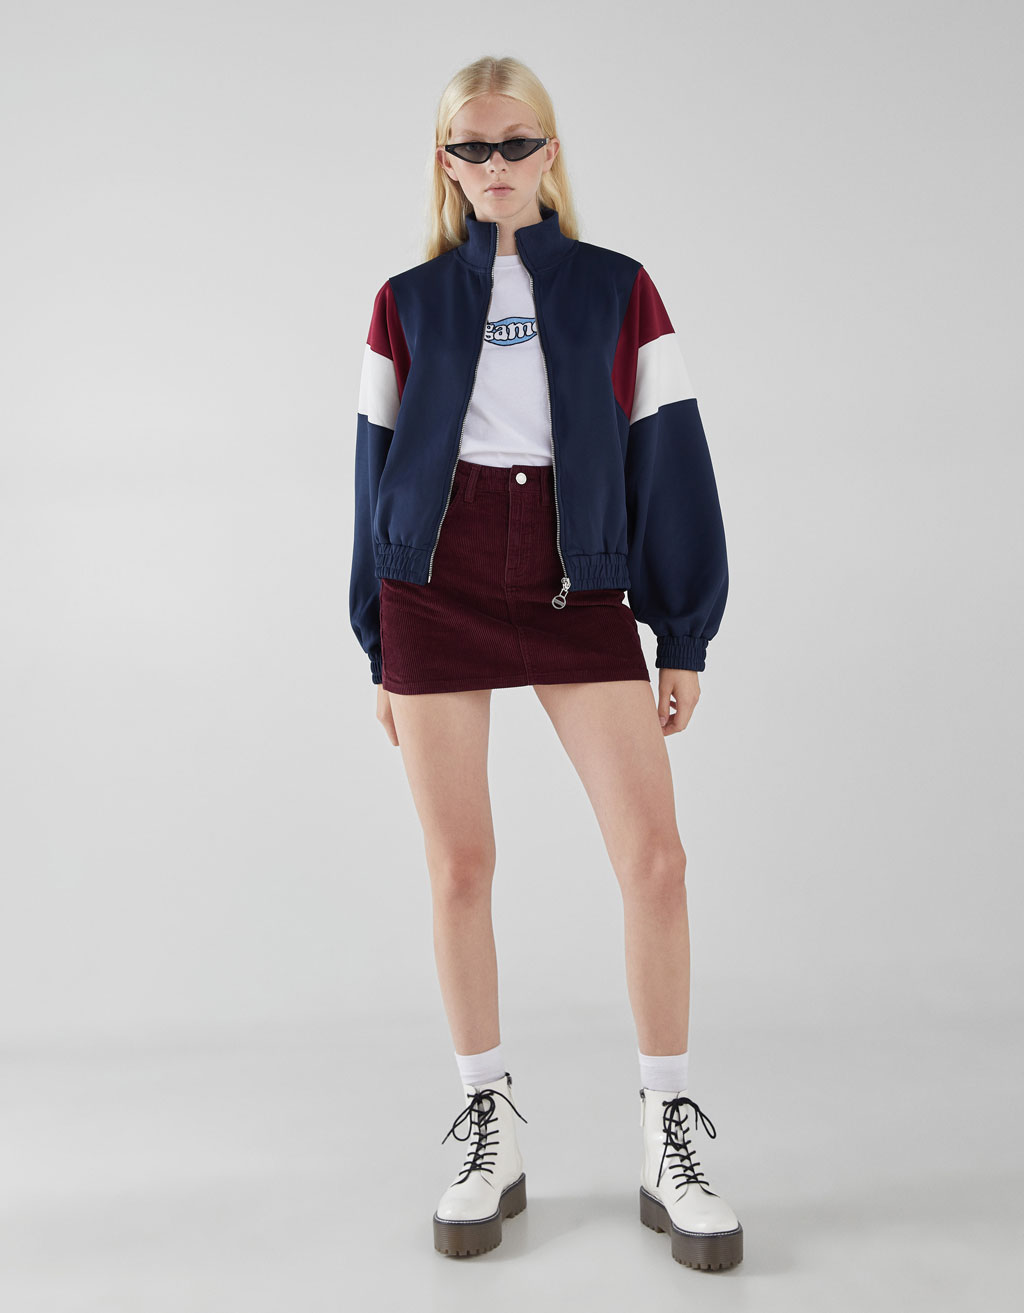 Contrast retro sports jacket